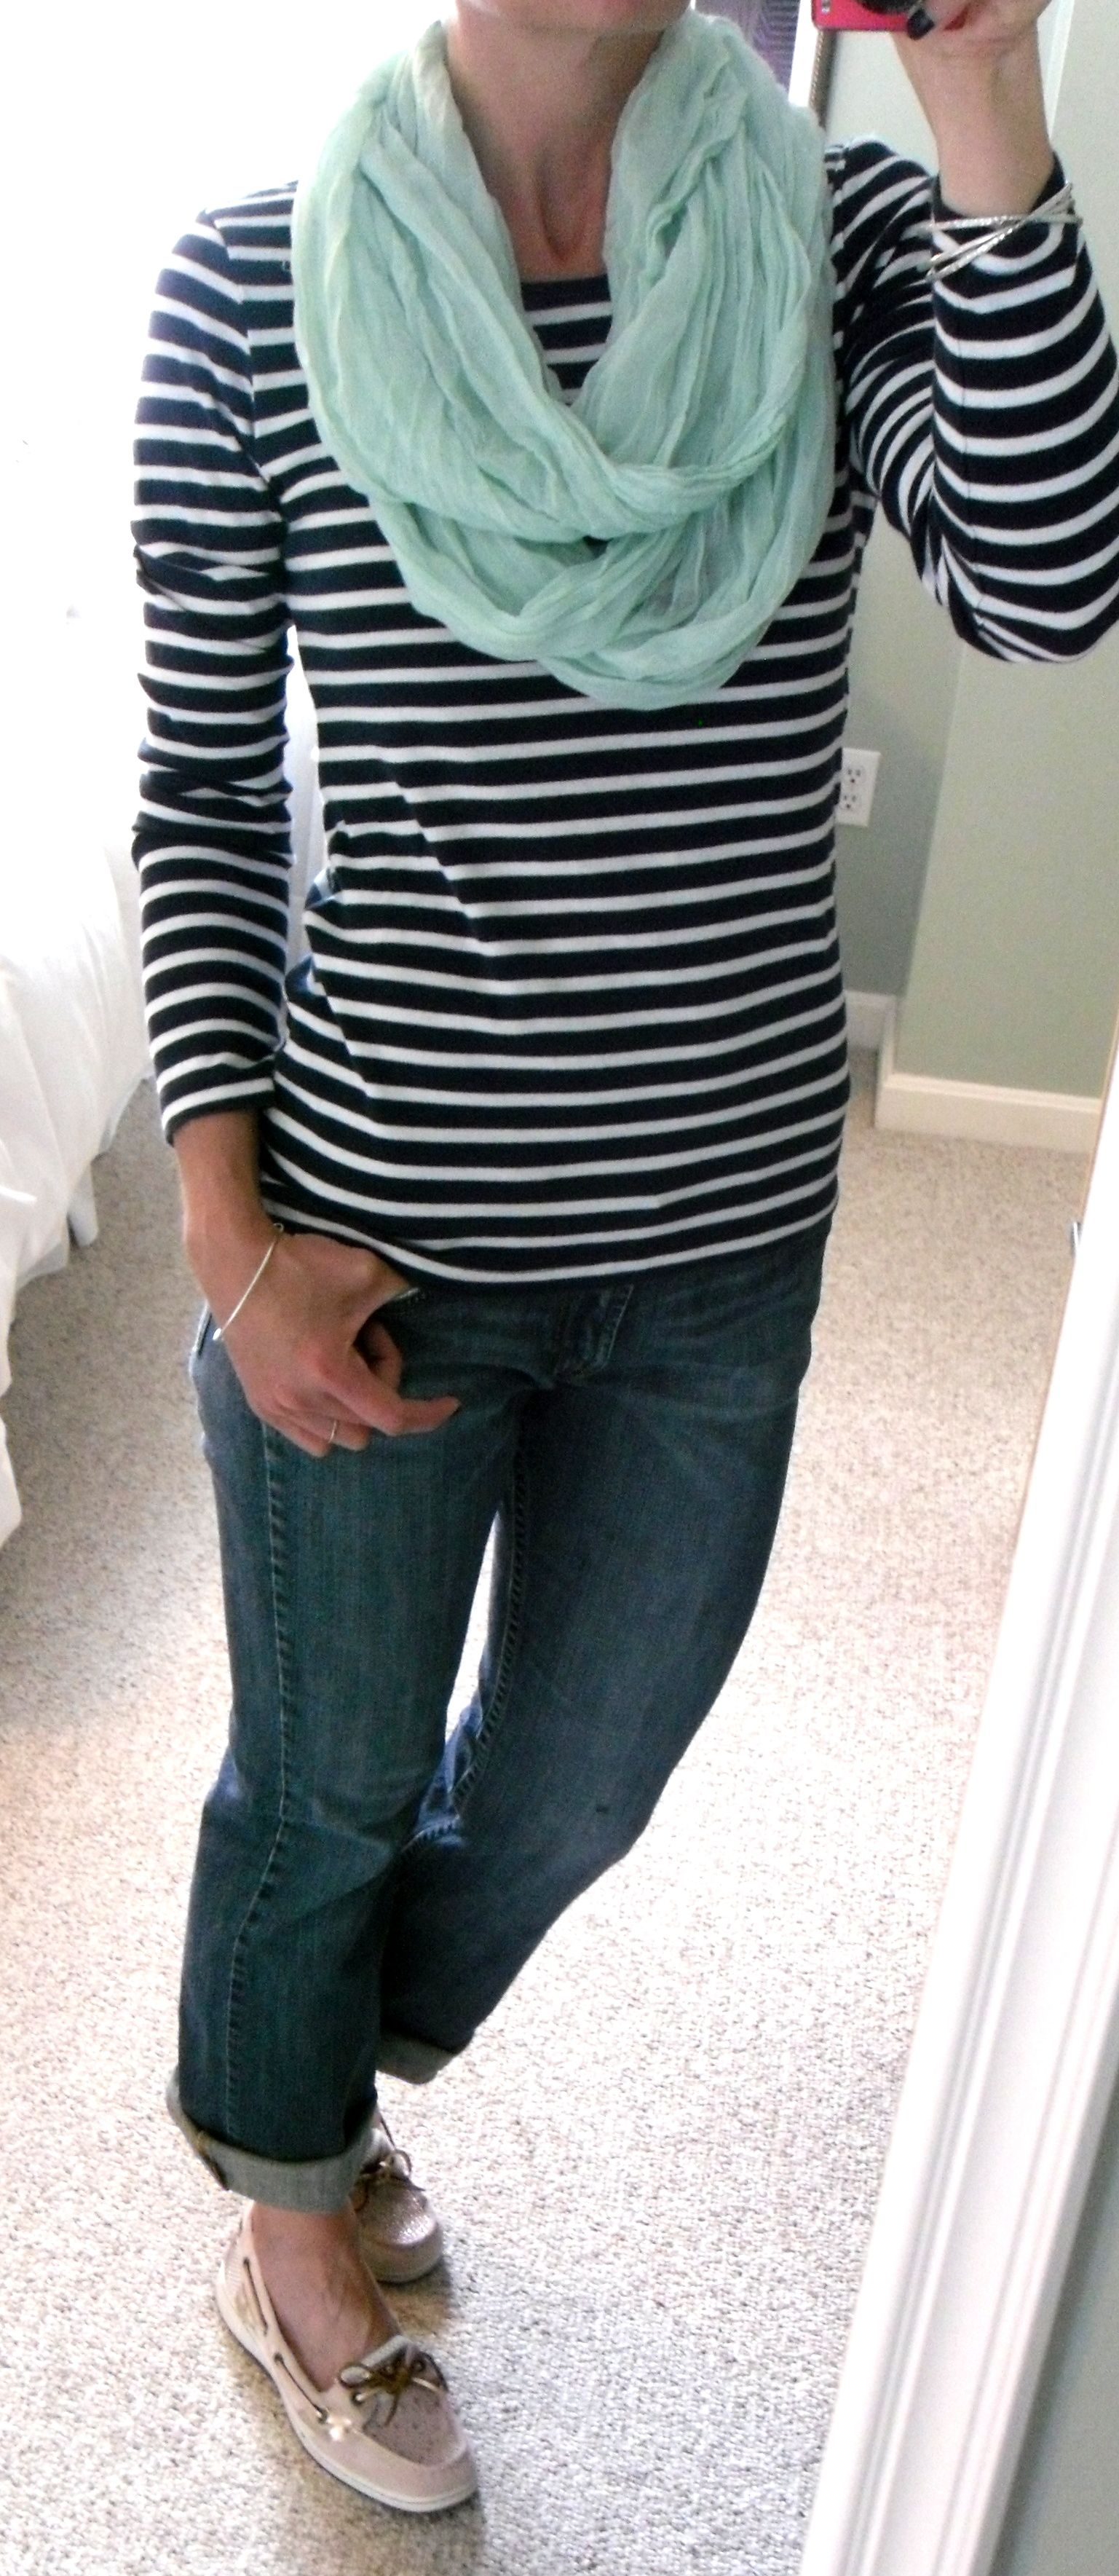 9e0344b3657c HM navy blue and white striped t-shirt, mint Figure 8 infinity scarf,  cuffed Lucky Brand jeans, Sperry Angelfish top siders